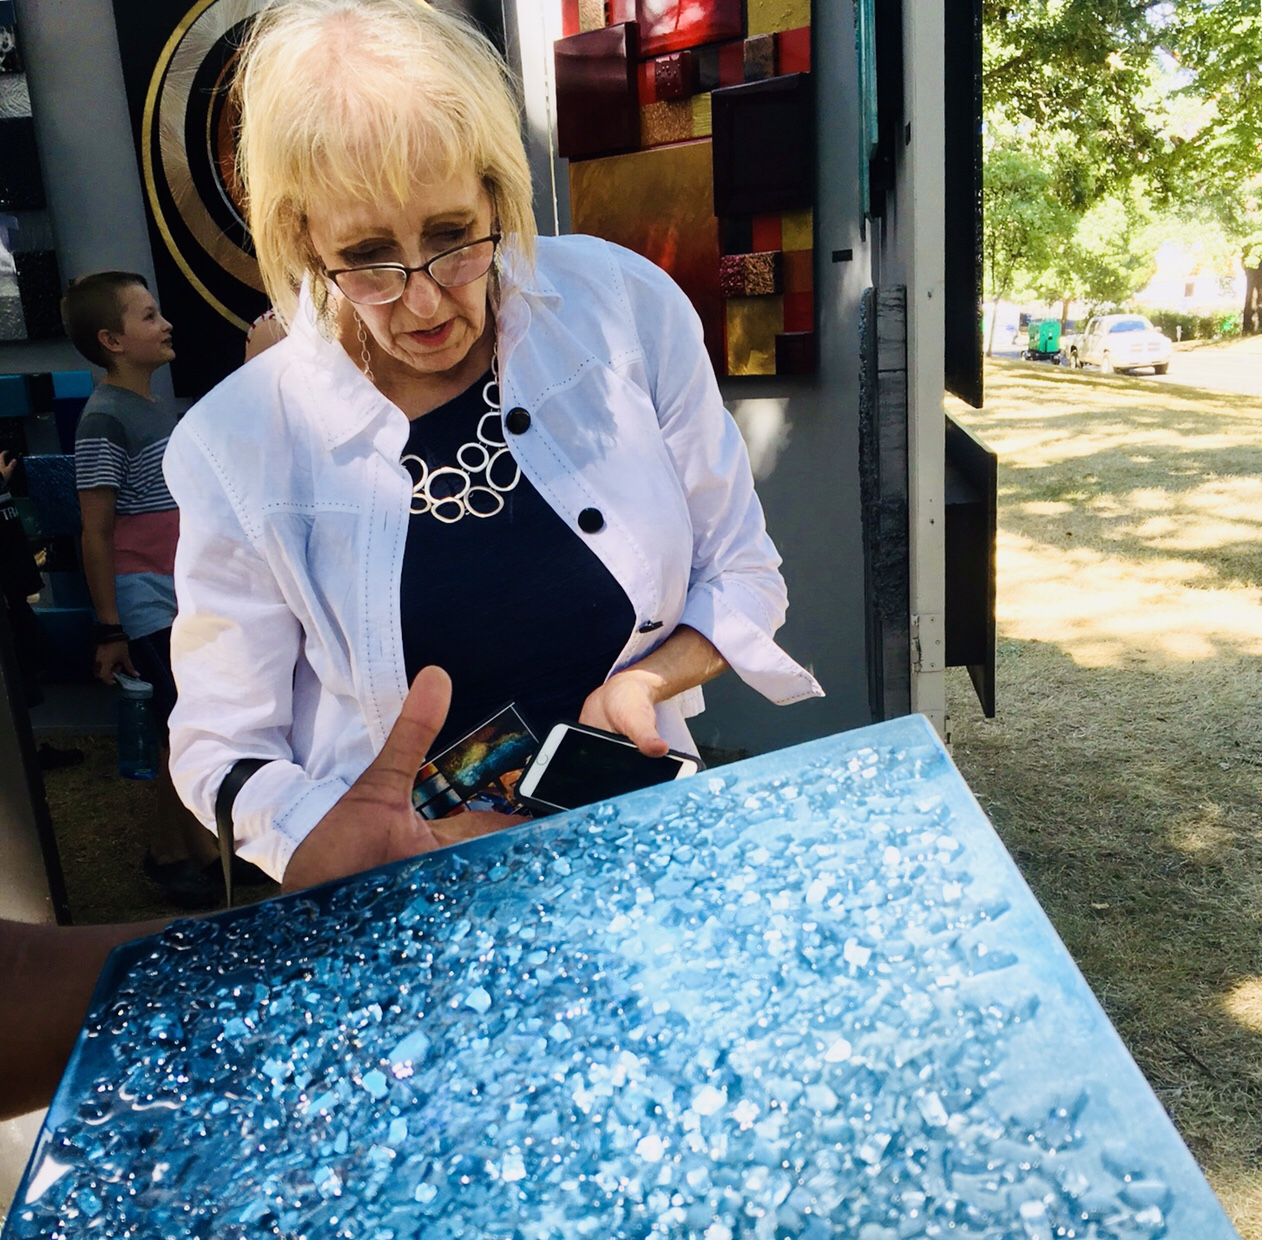 Summer Brings Many Art Events To Enjoy